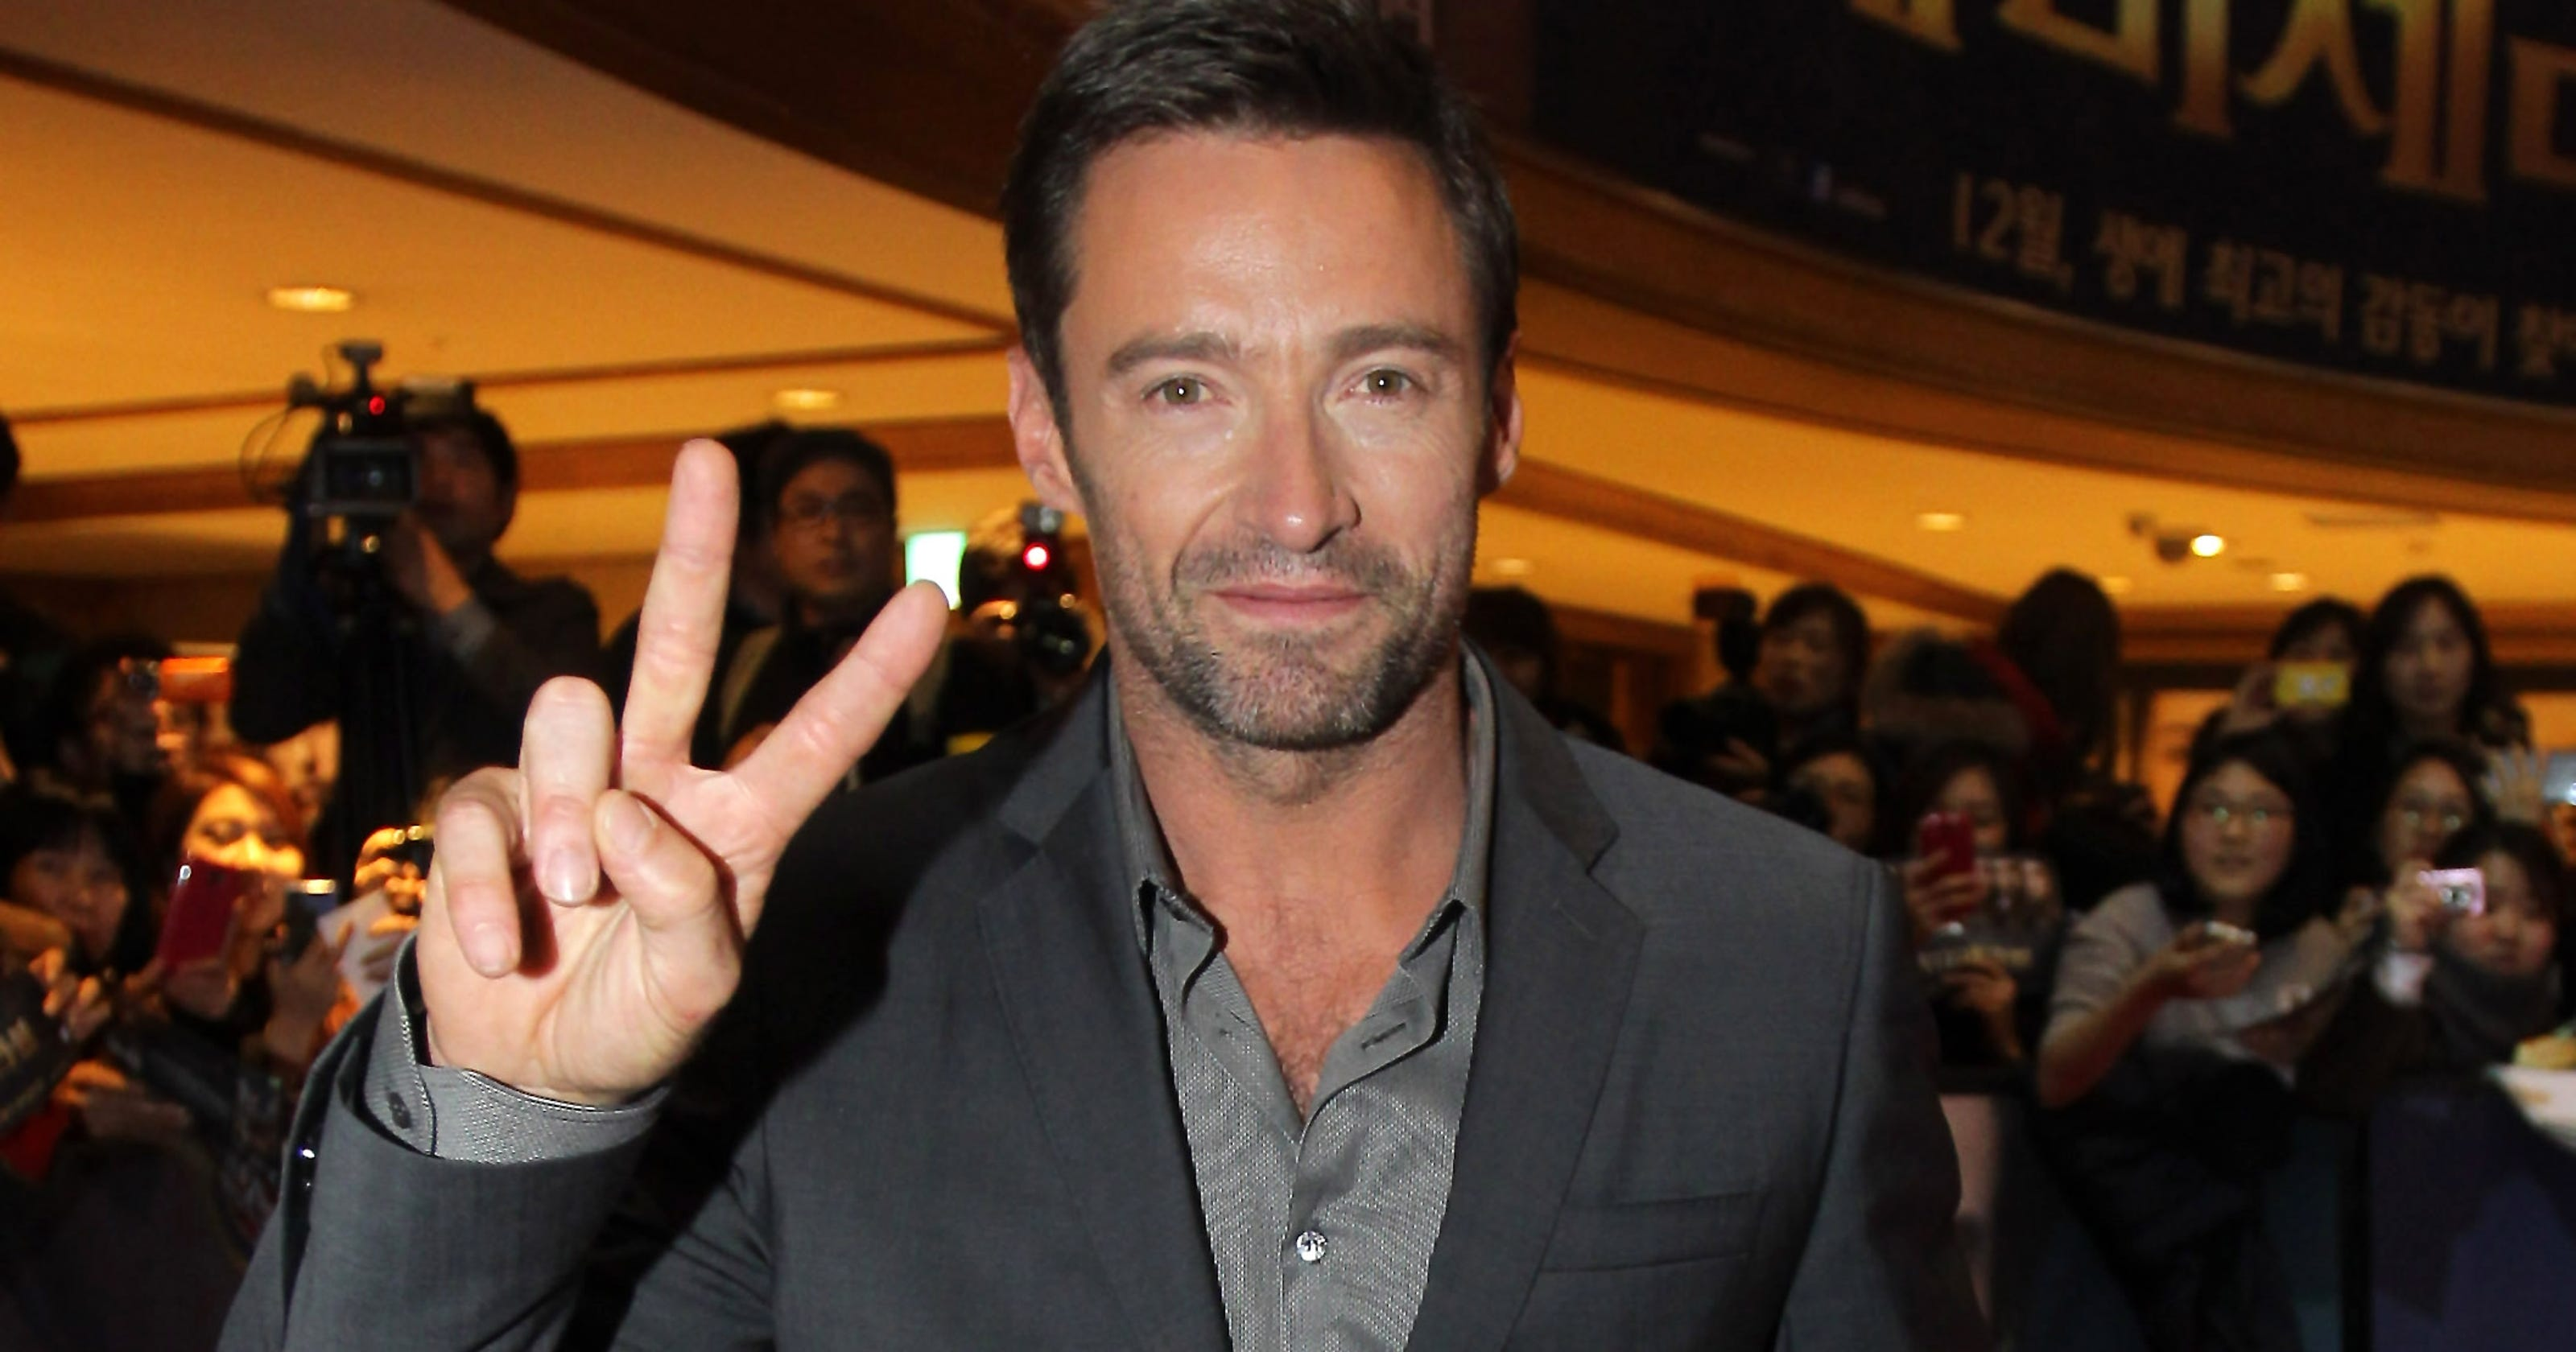 ed64a355b23 Hugh Jackman hawks his java at junket for a good cause